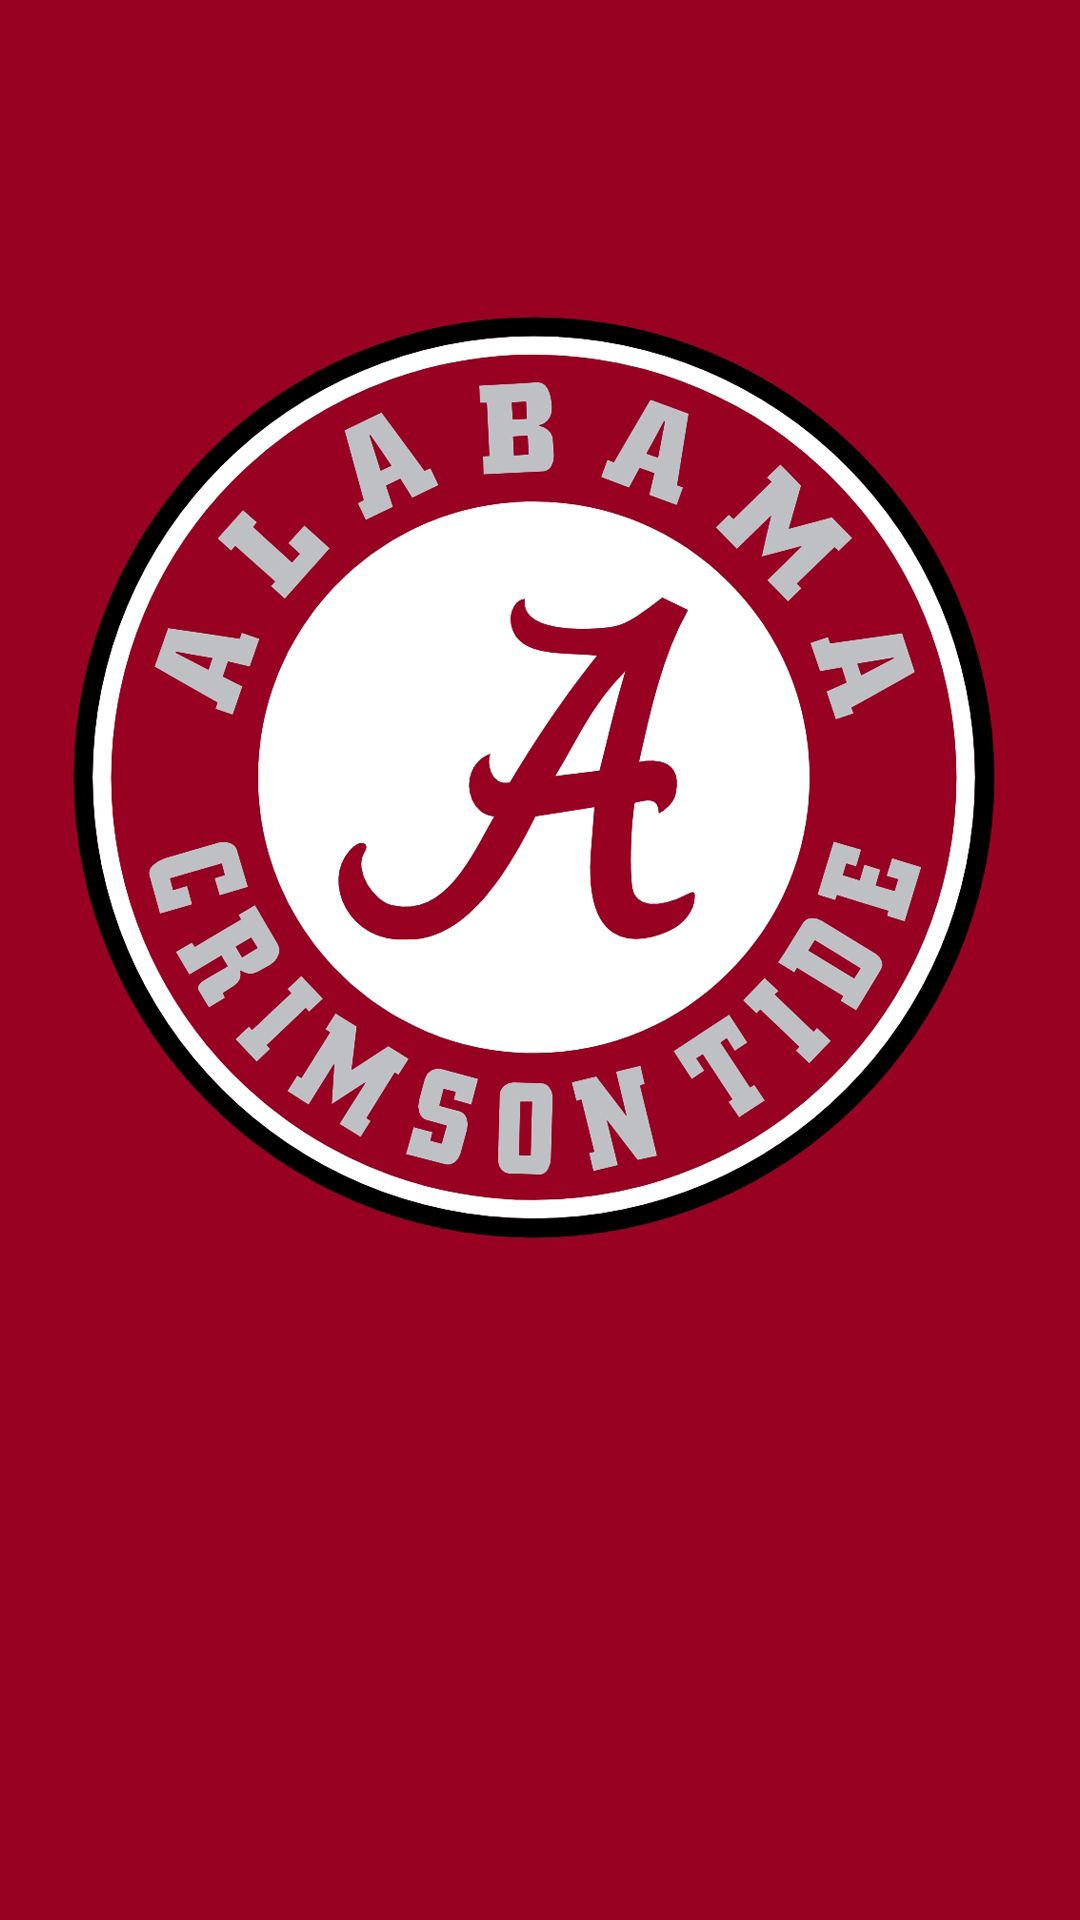 Free Alabama Wallpapers For Mobile Phones with Logo | Android Wallpapers | Pinterest | Alabama ...